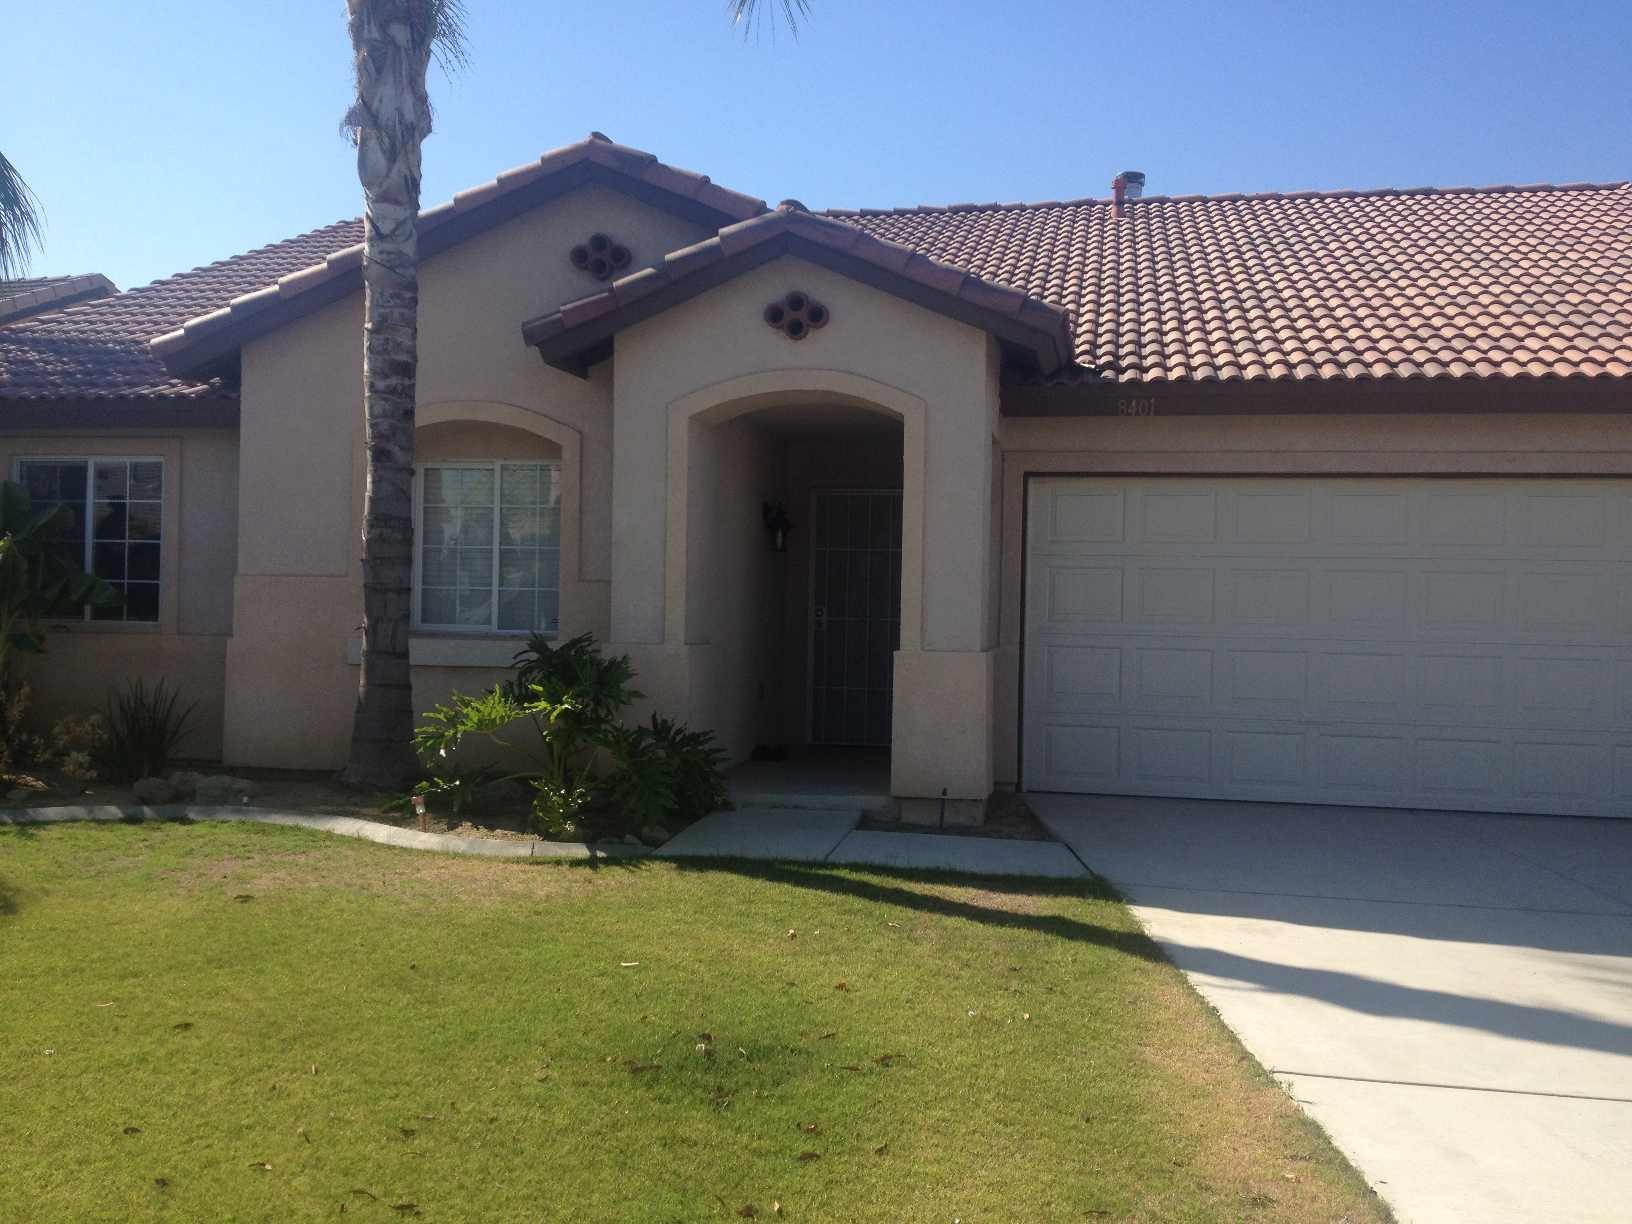 8401 Olive Grove Ct., Bakersfield, CA 93312 rented northwest home